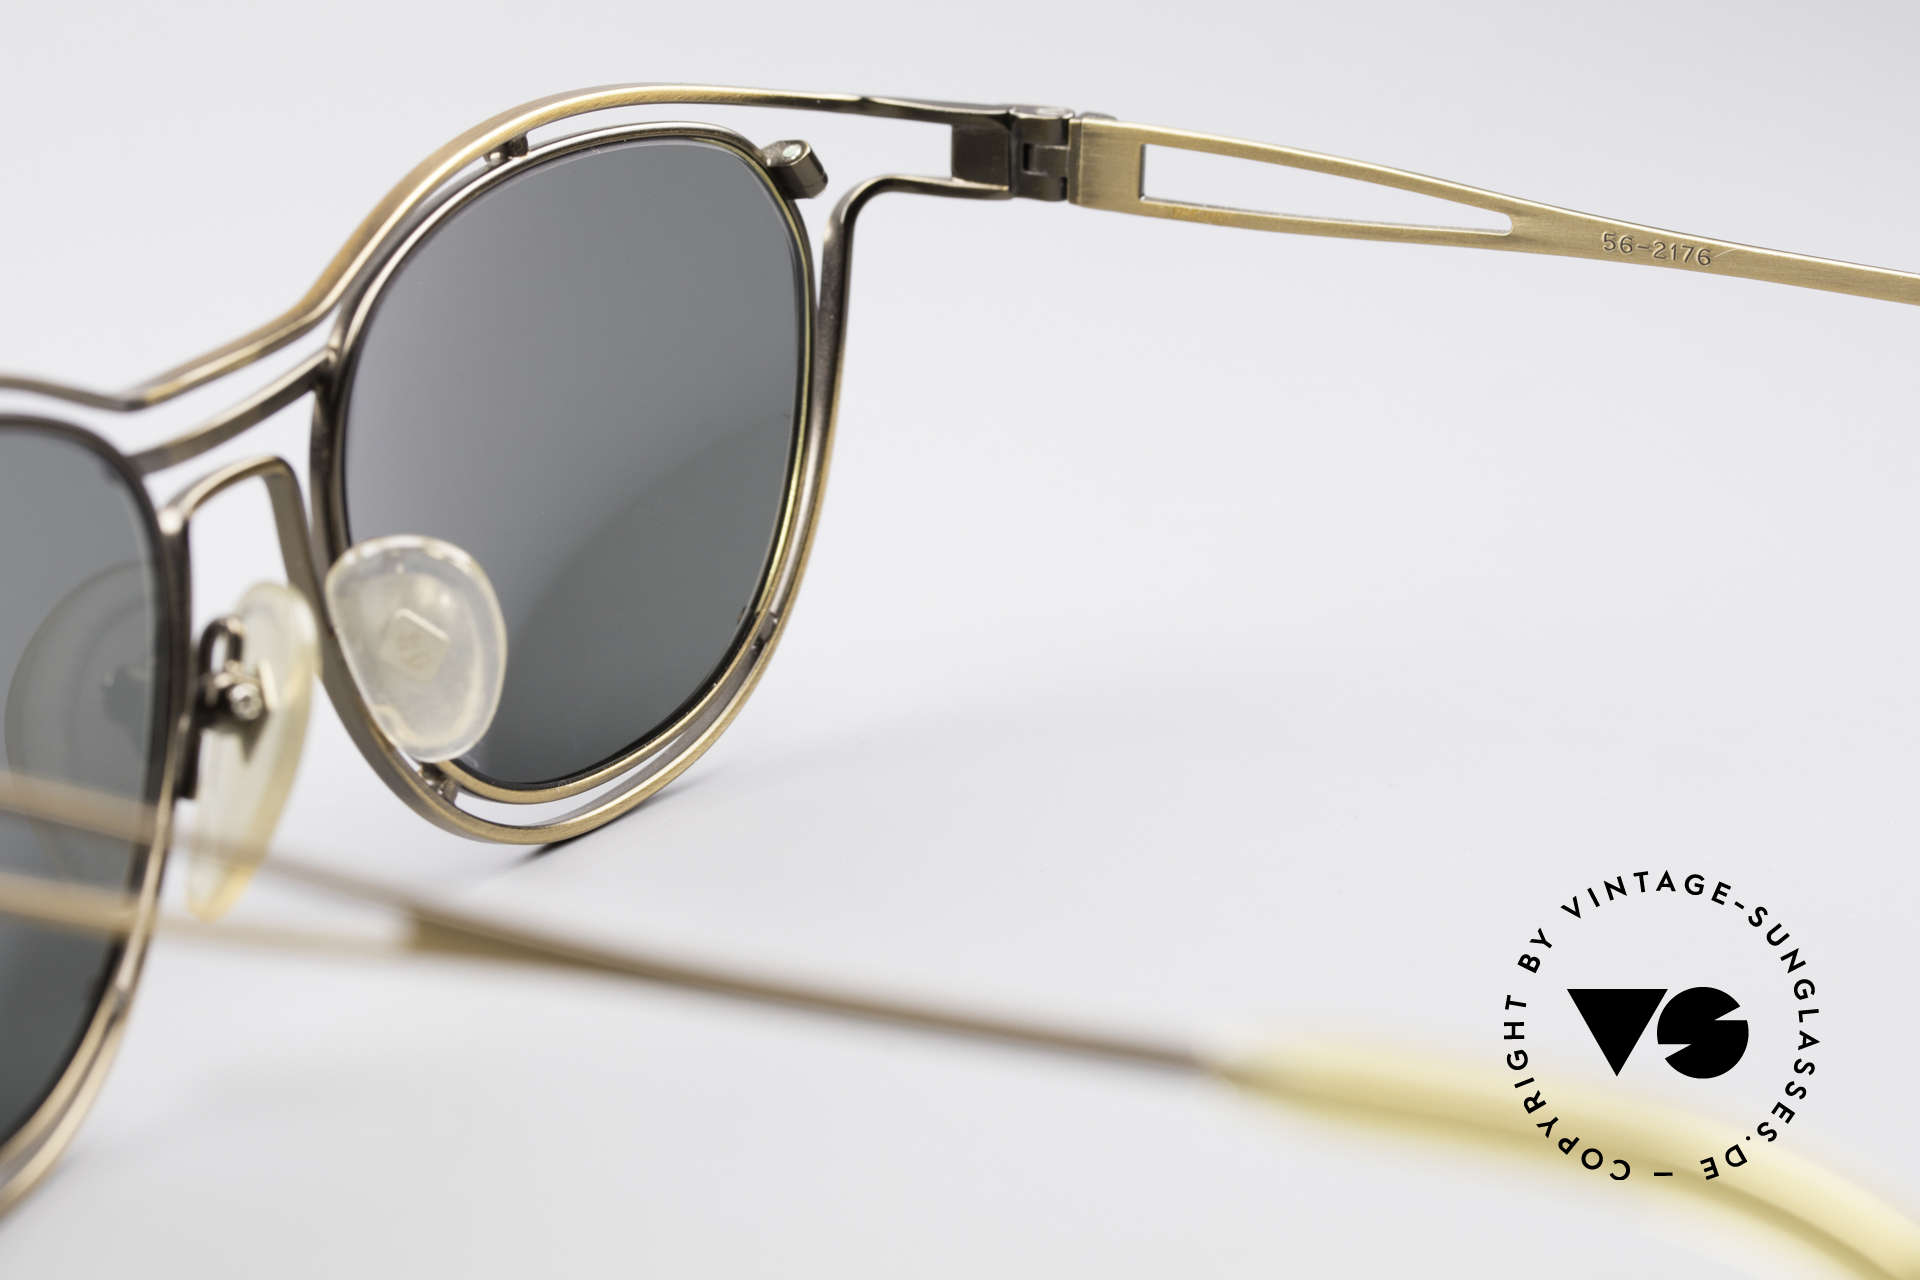 Jean Paul Gaultier 56-2176 Rare Designer Sunglasses, NO RETRO SHADES; but a great original from 1994, Made for Men and Women